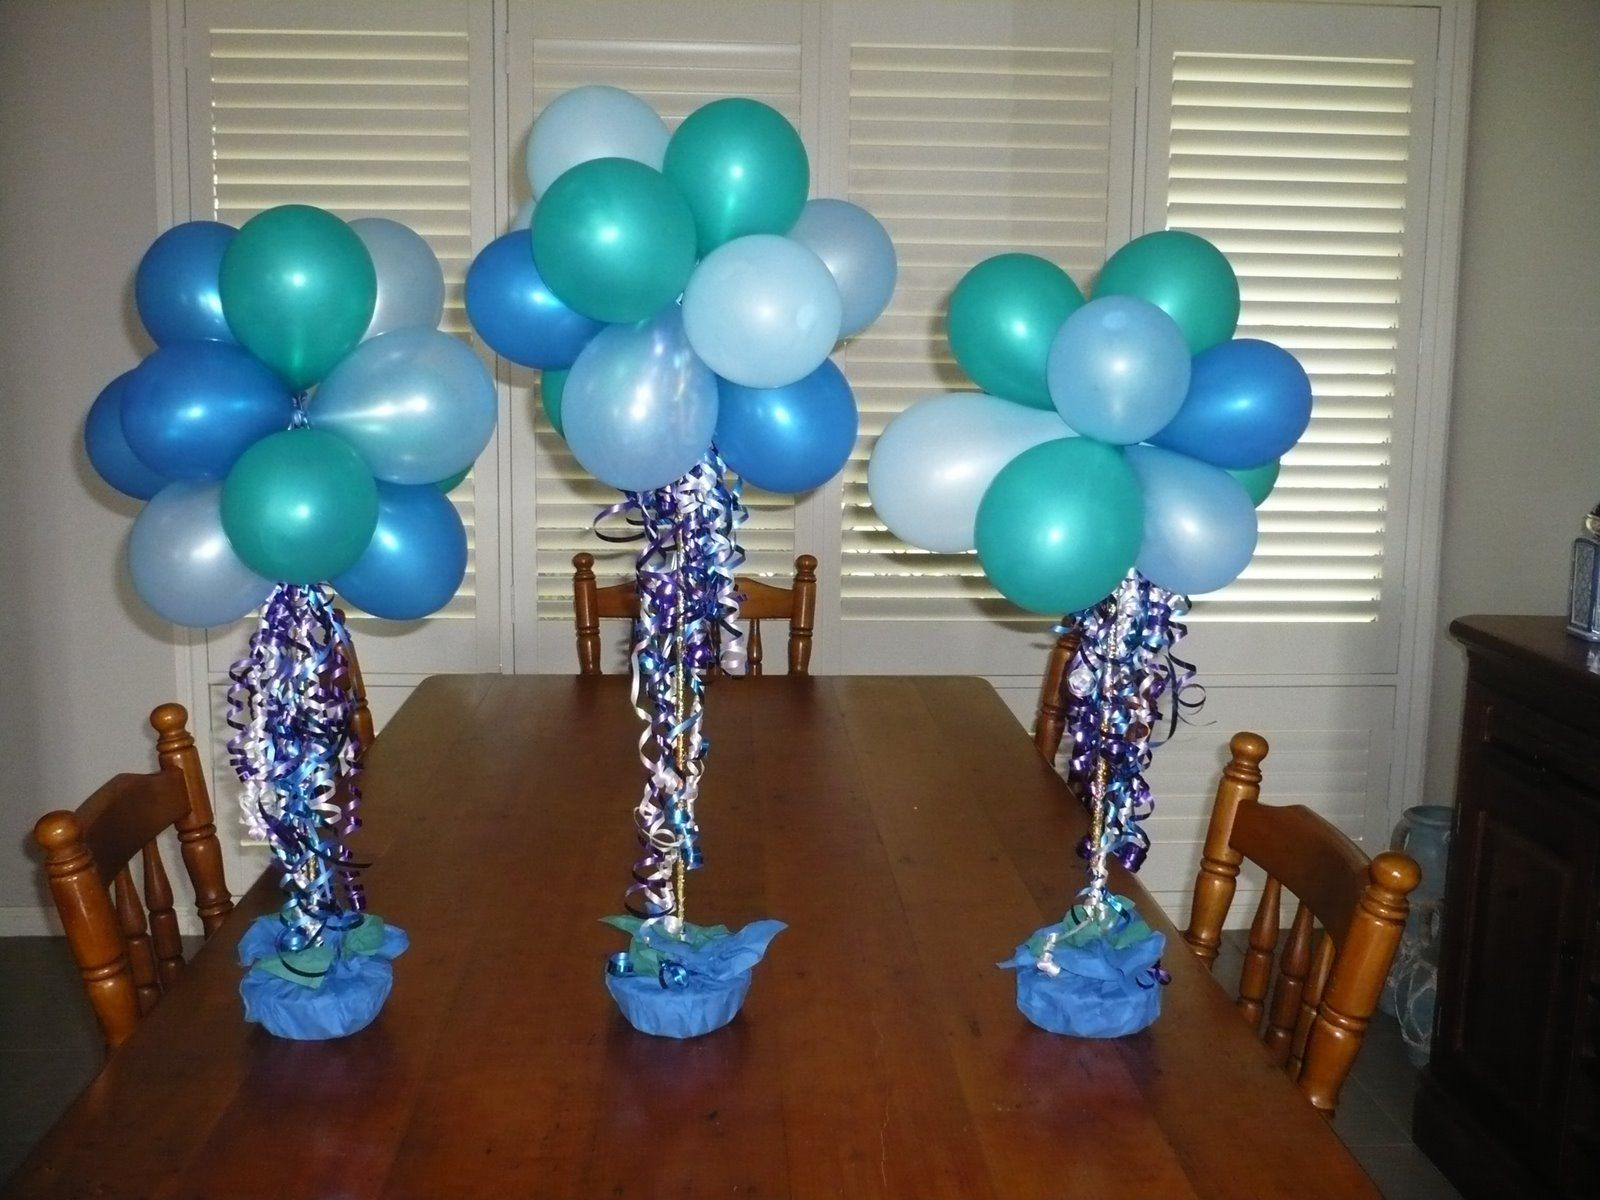 Birthday table decorations boy - Ideas To Make 90th Birthday Table Decorations Google Search